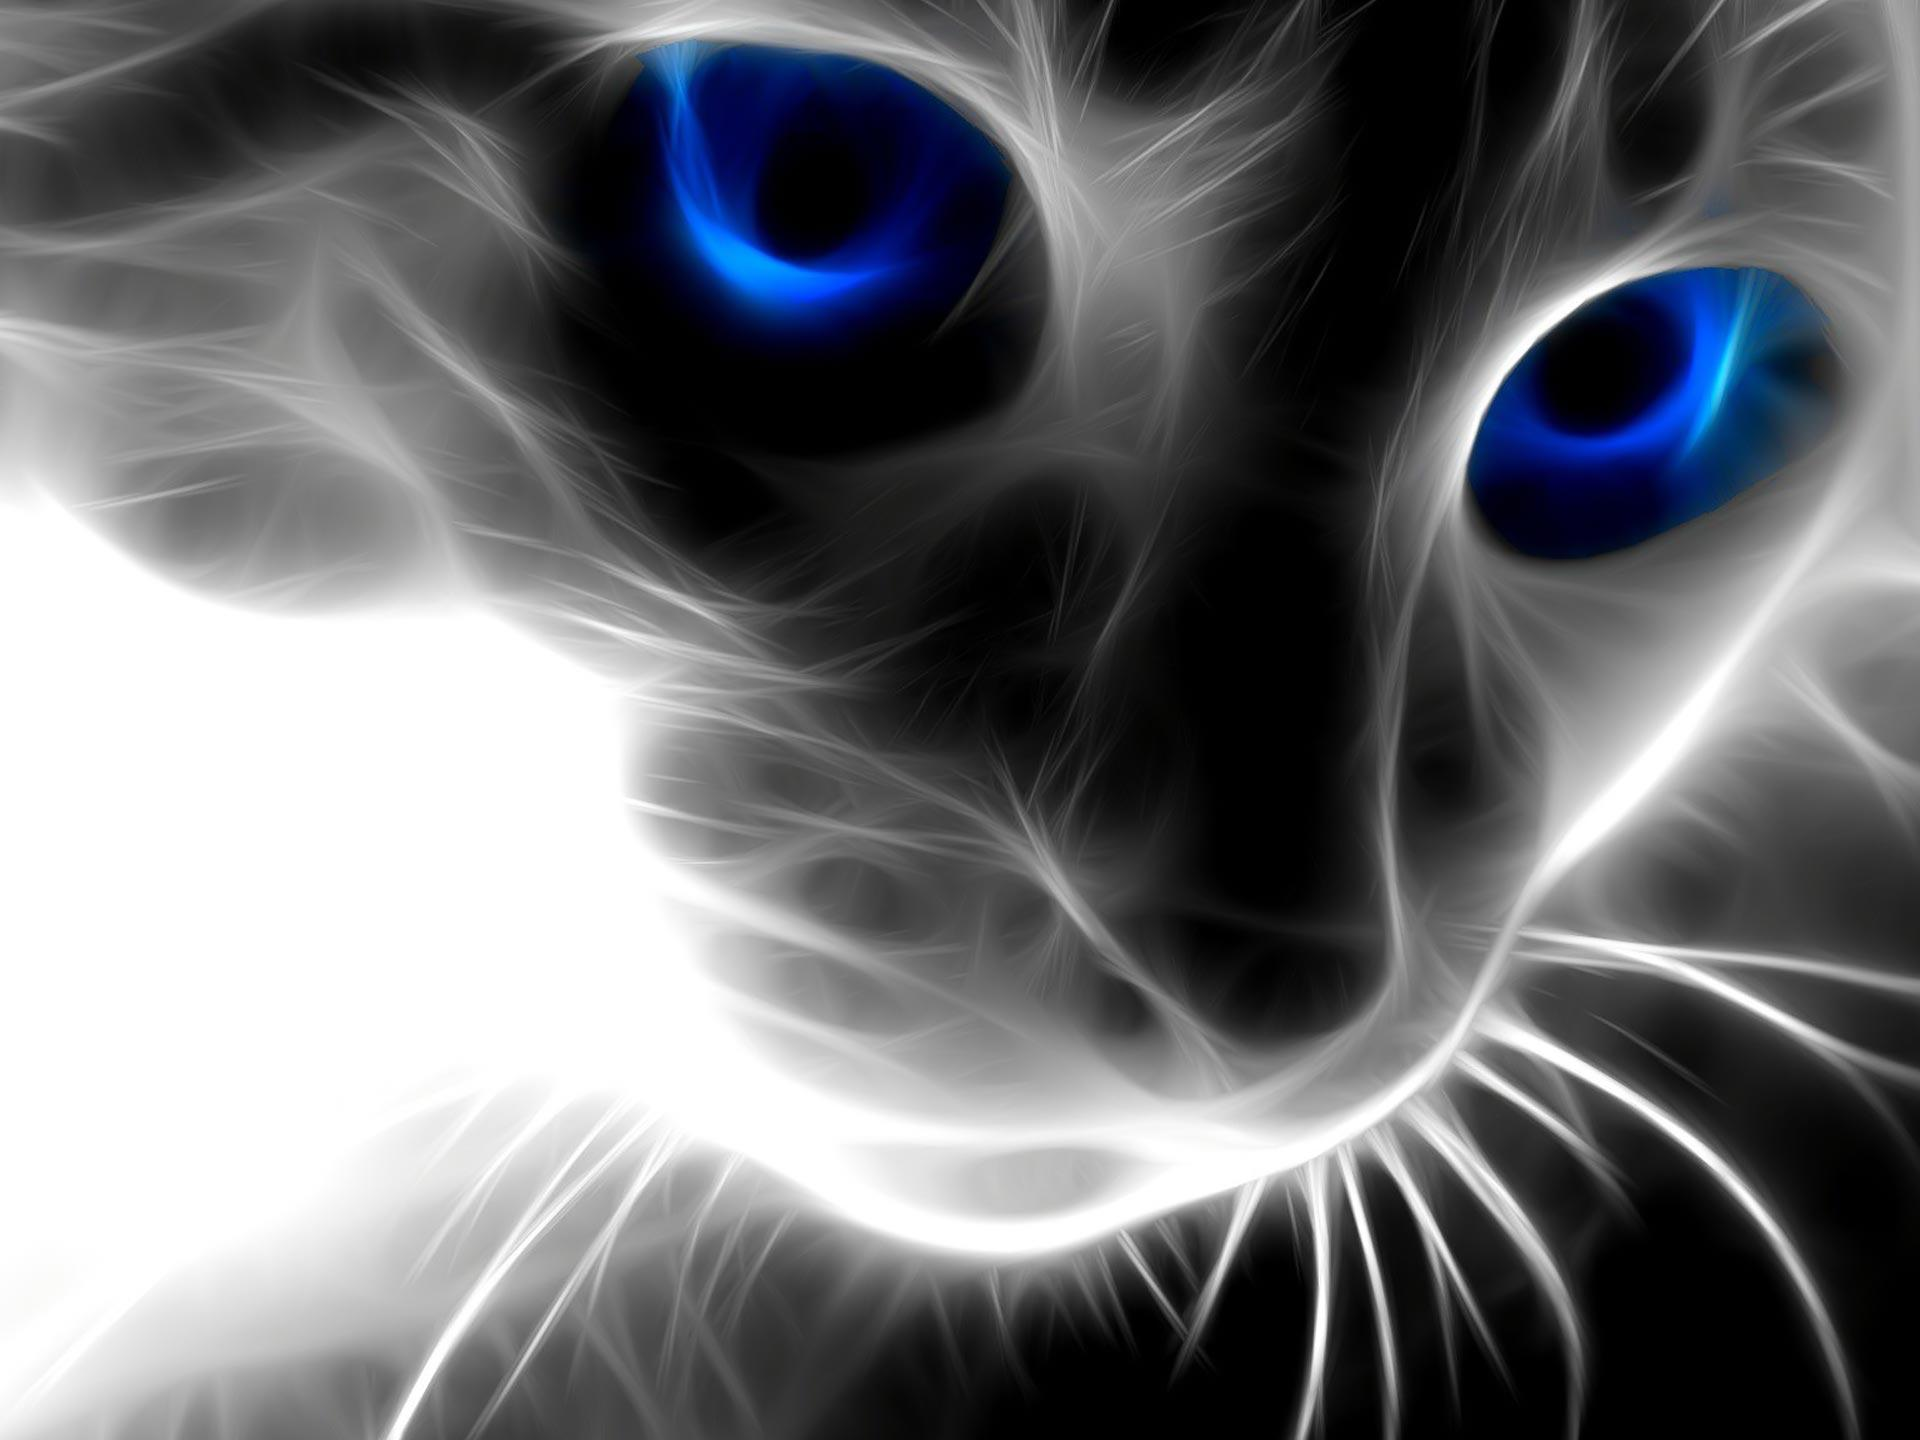 Desktop Wallpapers · Gallery · Windows 7 · Magic Cat wallpapers